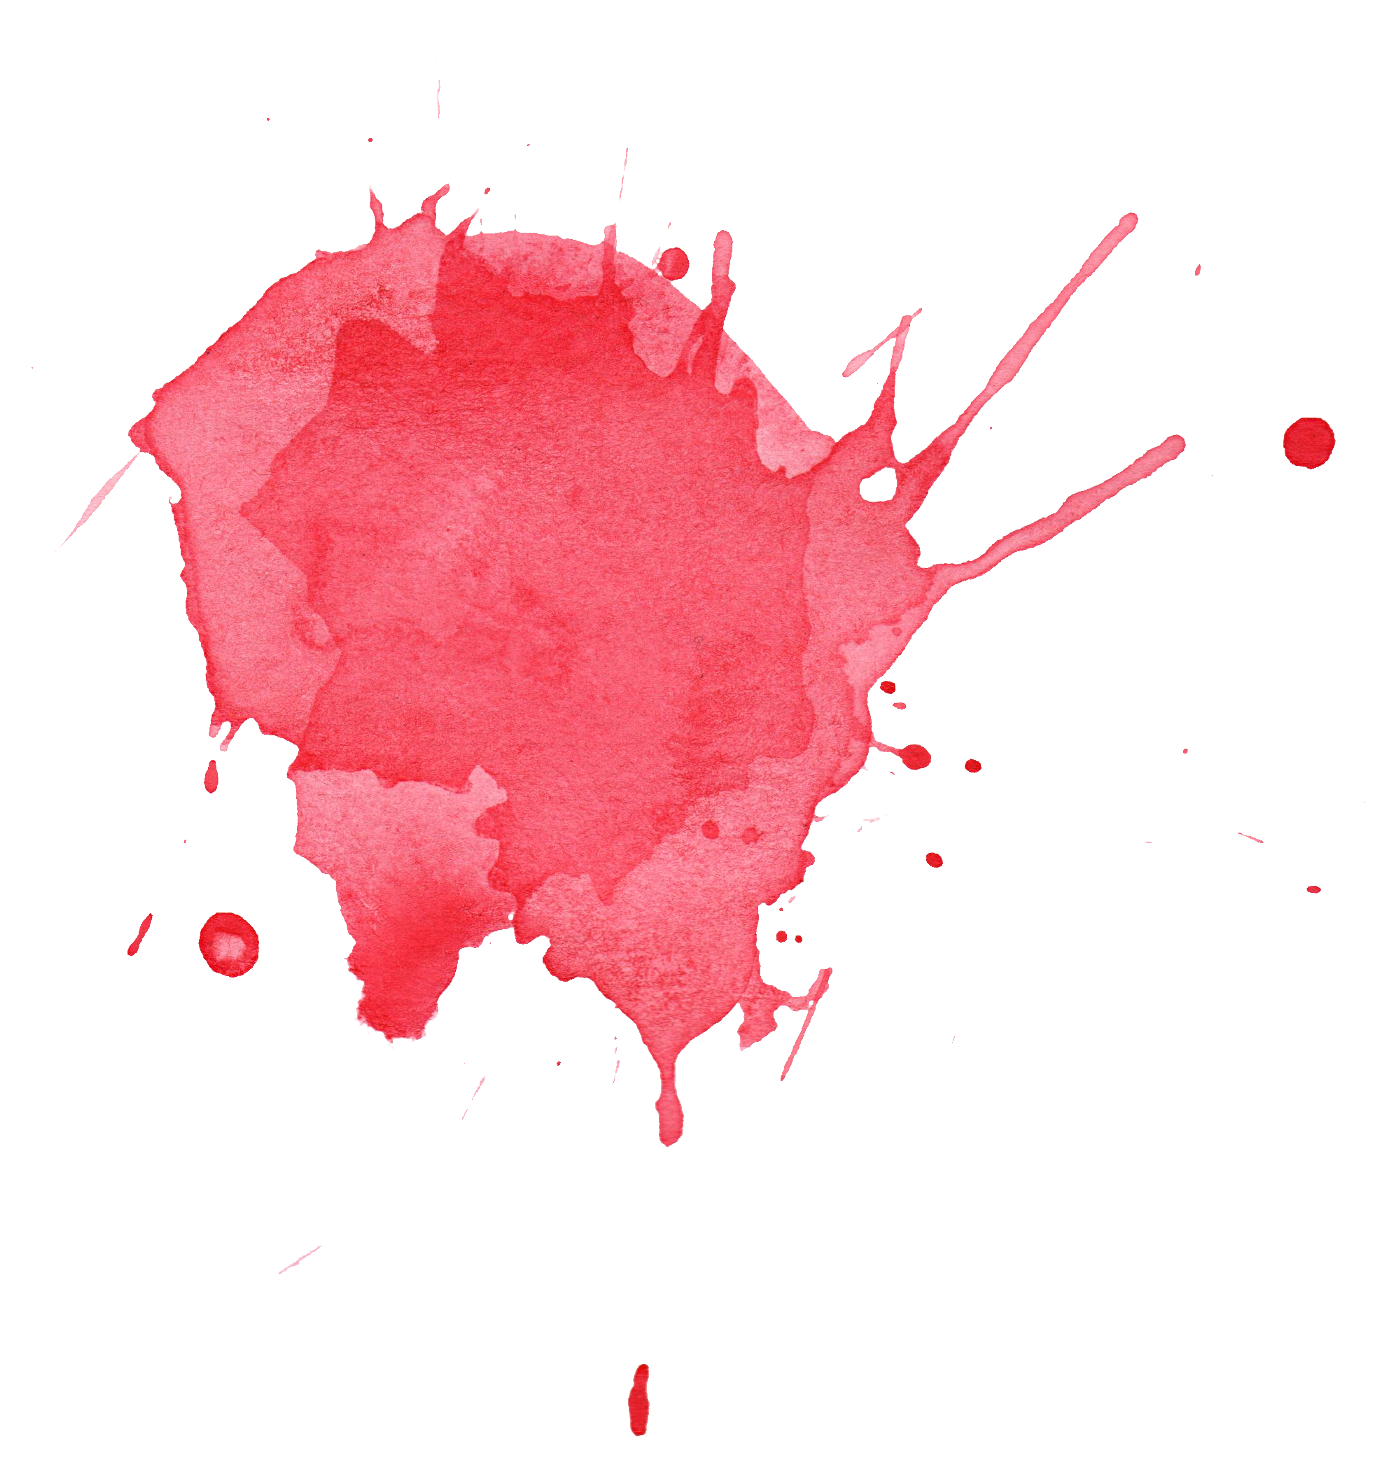 Water color splatter png. Red watercolor transparent